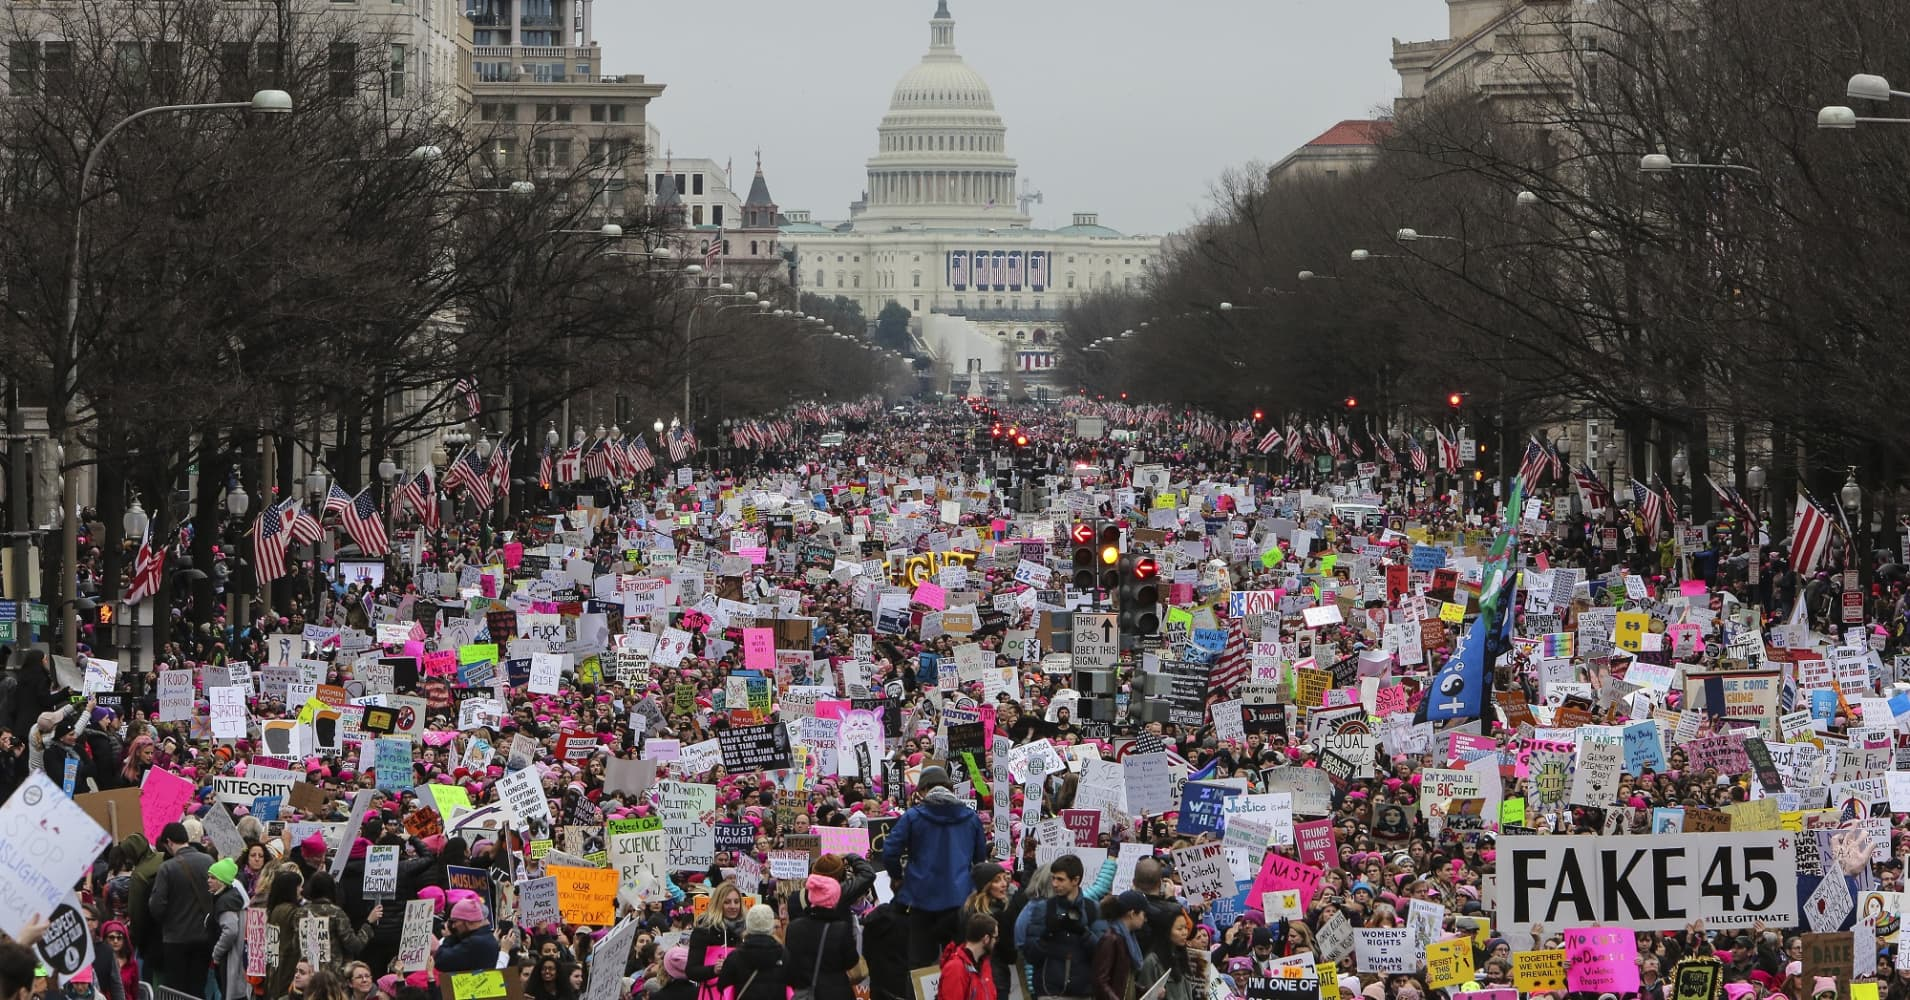 With Capitol Hill in the background a crowd fills the streets on Washington, during the Women's March on January 21, 2017.